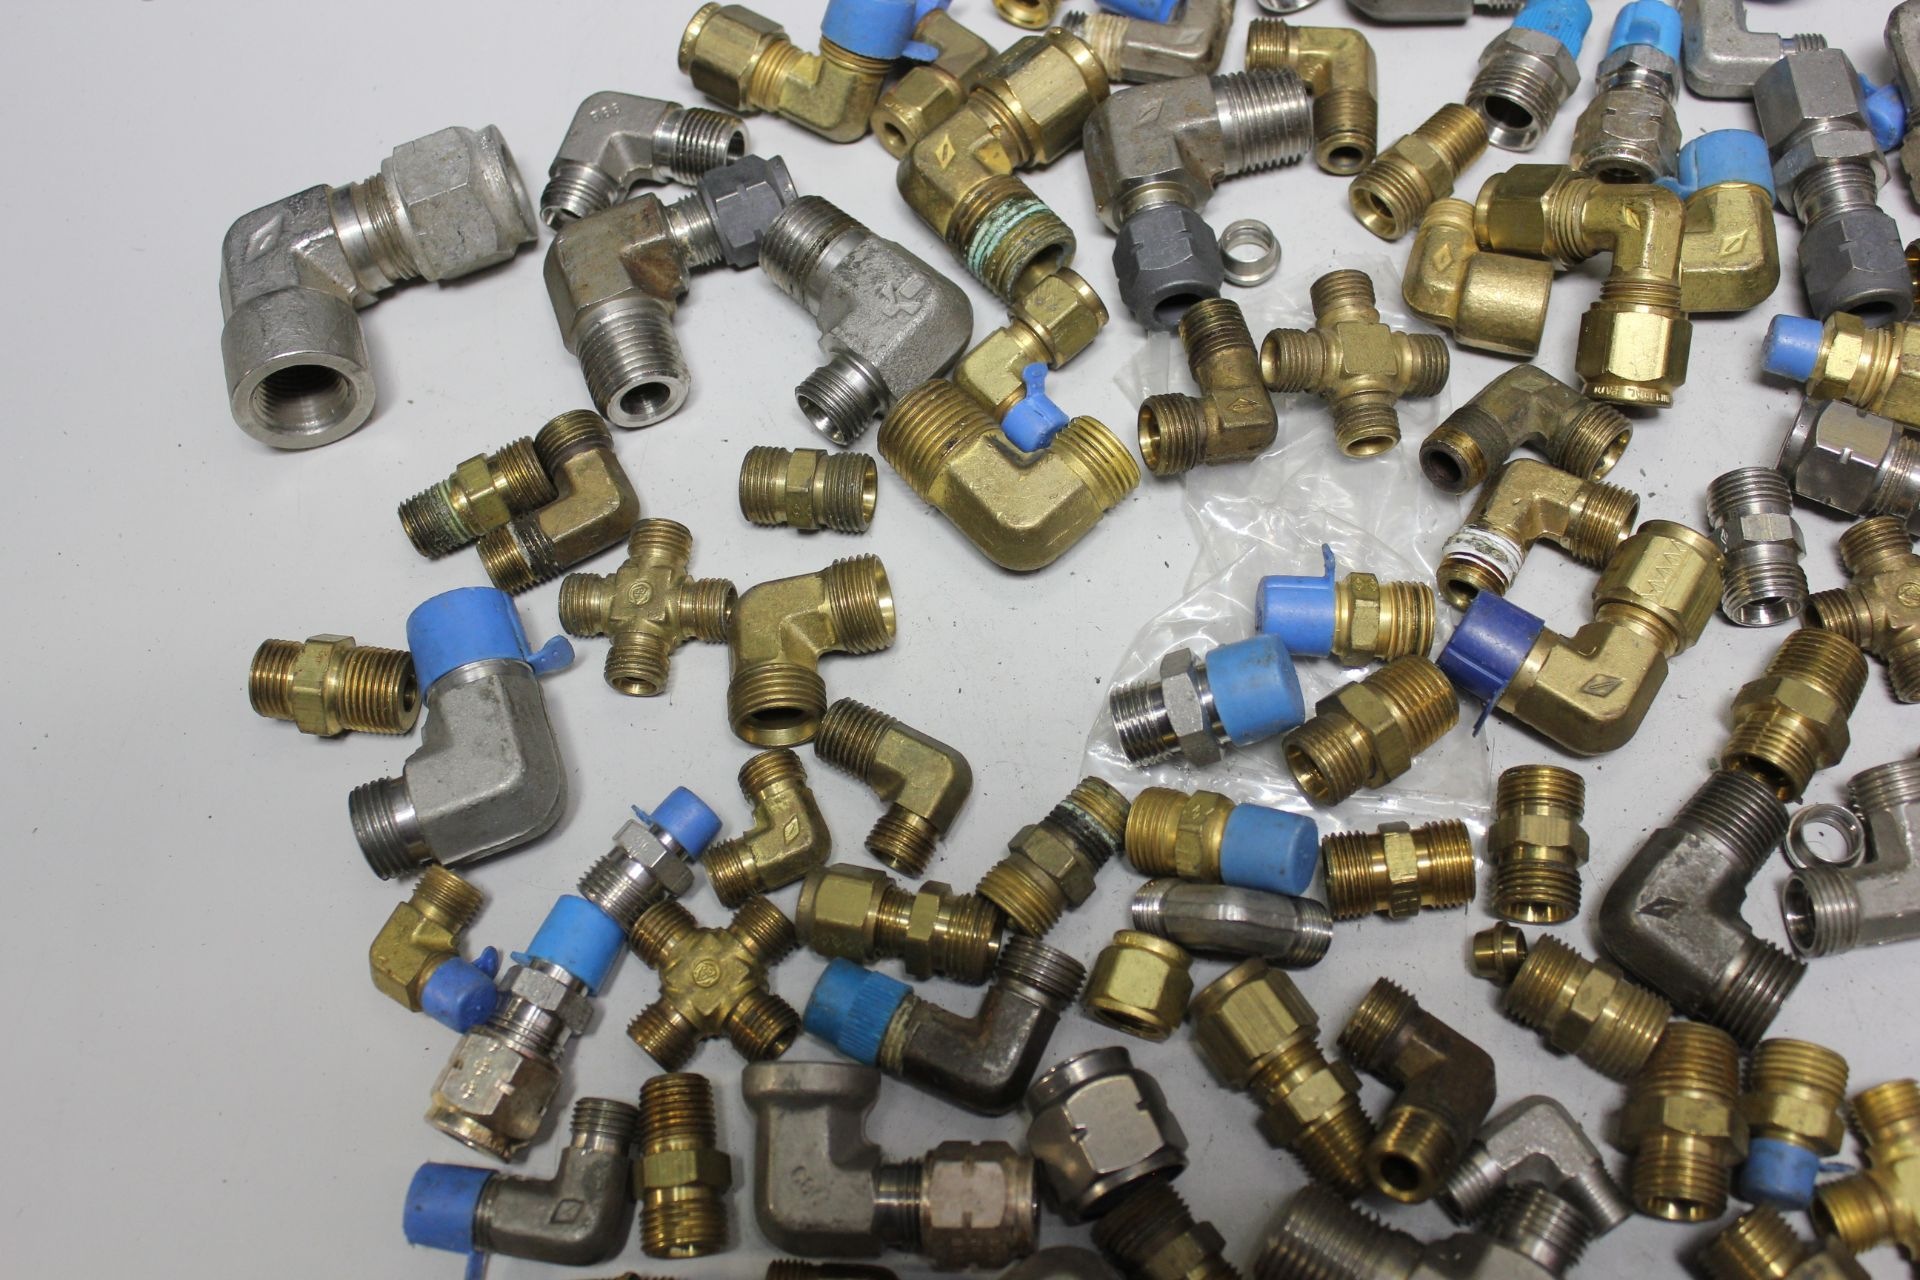 LOT OF COMPRESSION FITTINGS - Image 6 of 7